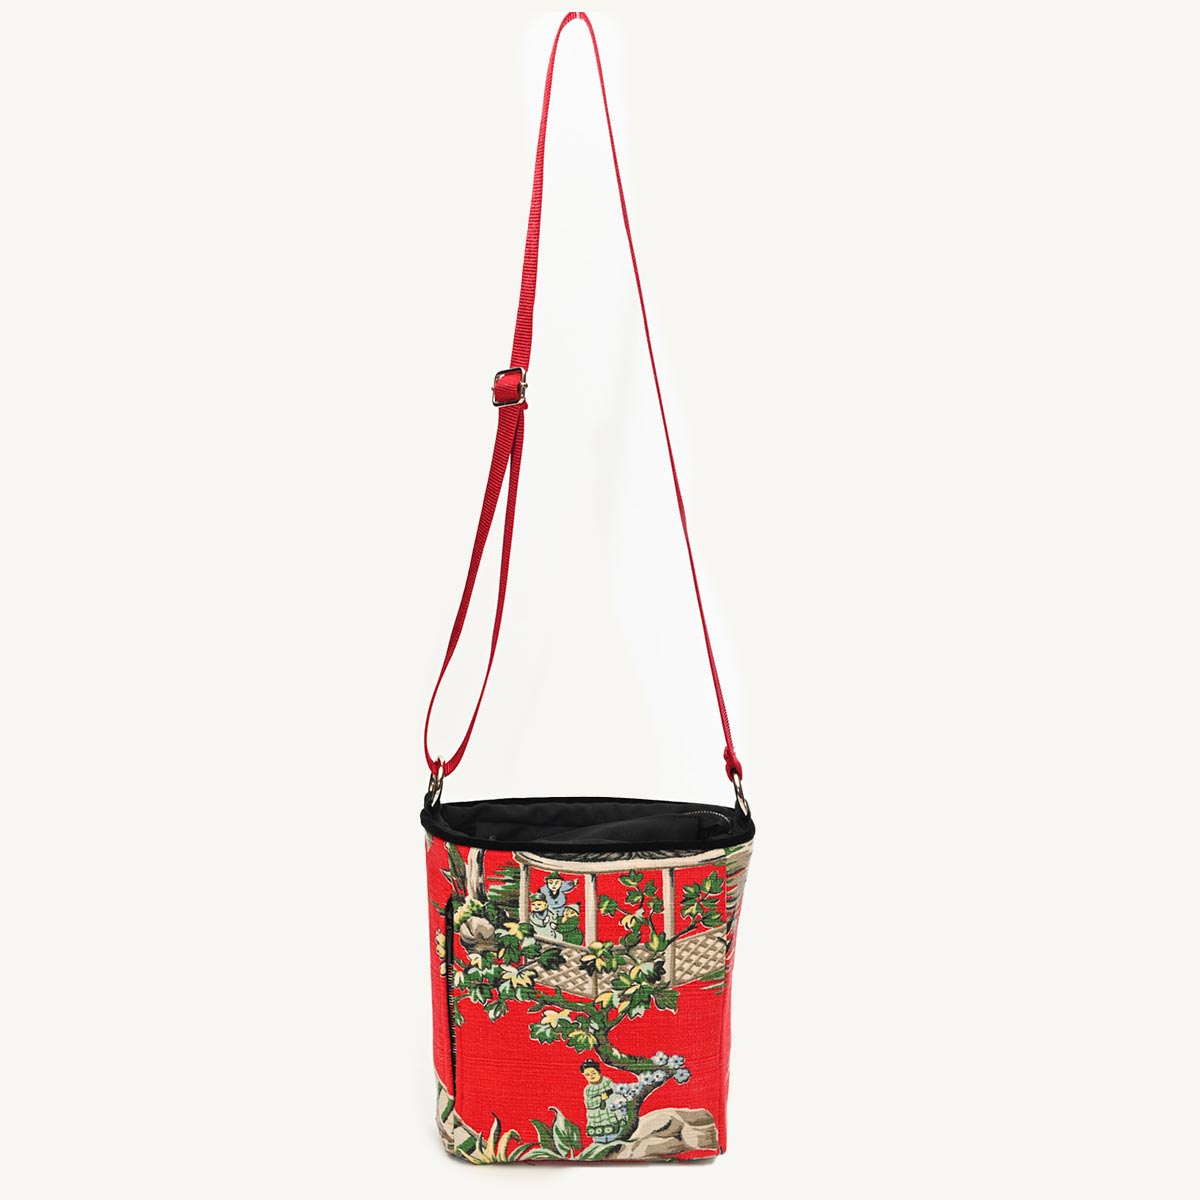 crossbody bag asian motif on cherry red DSC 6535